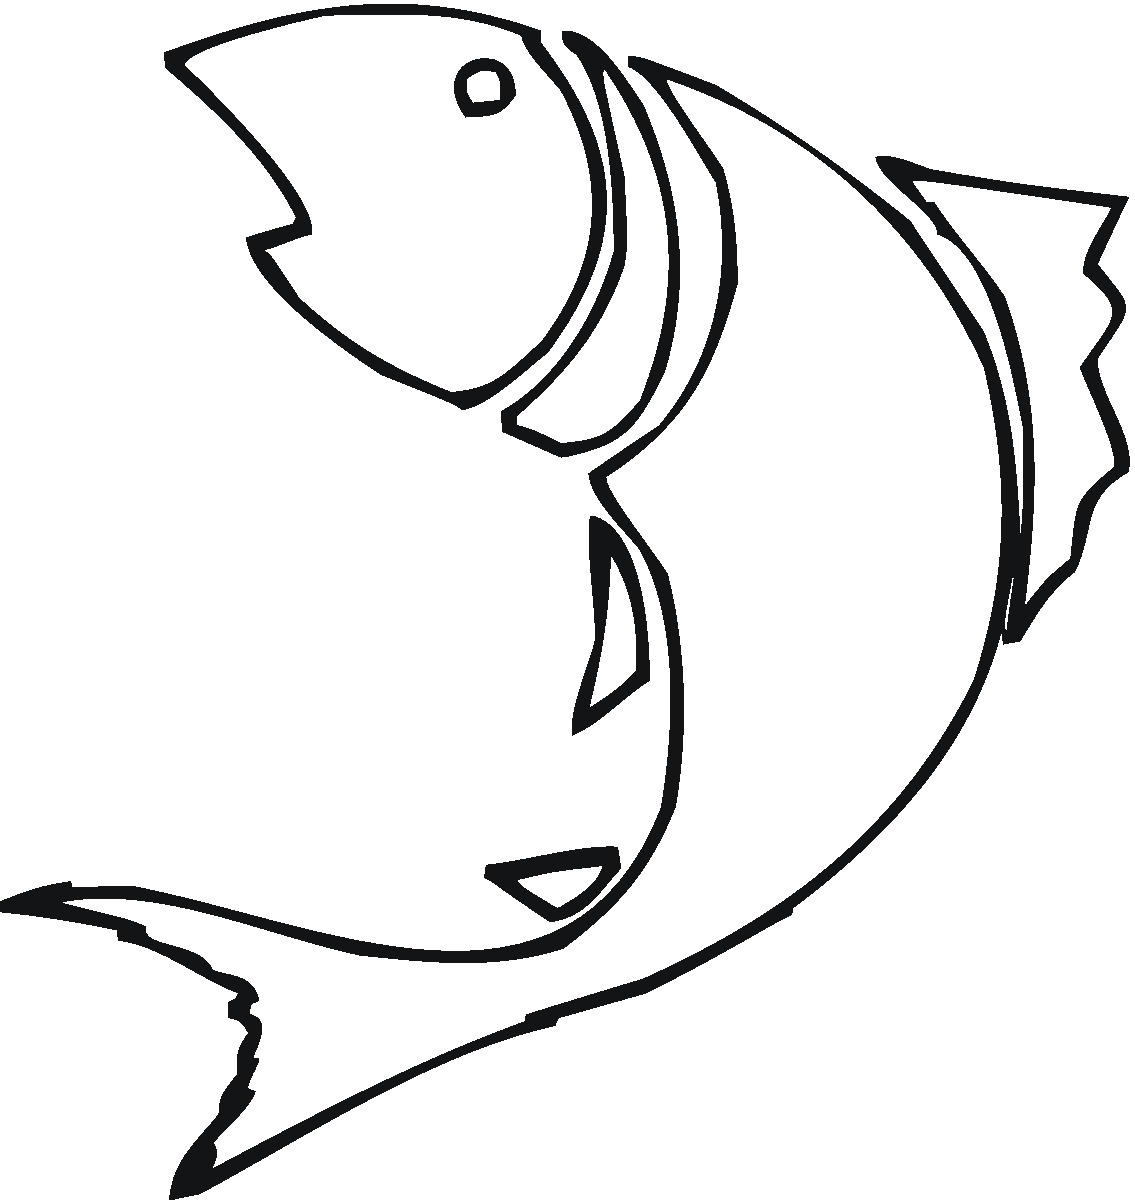 Fish bowl clipart kavalabeauty